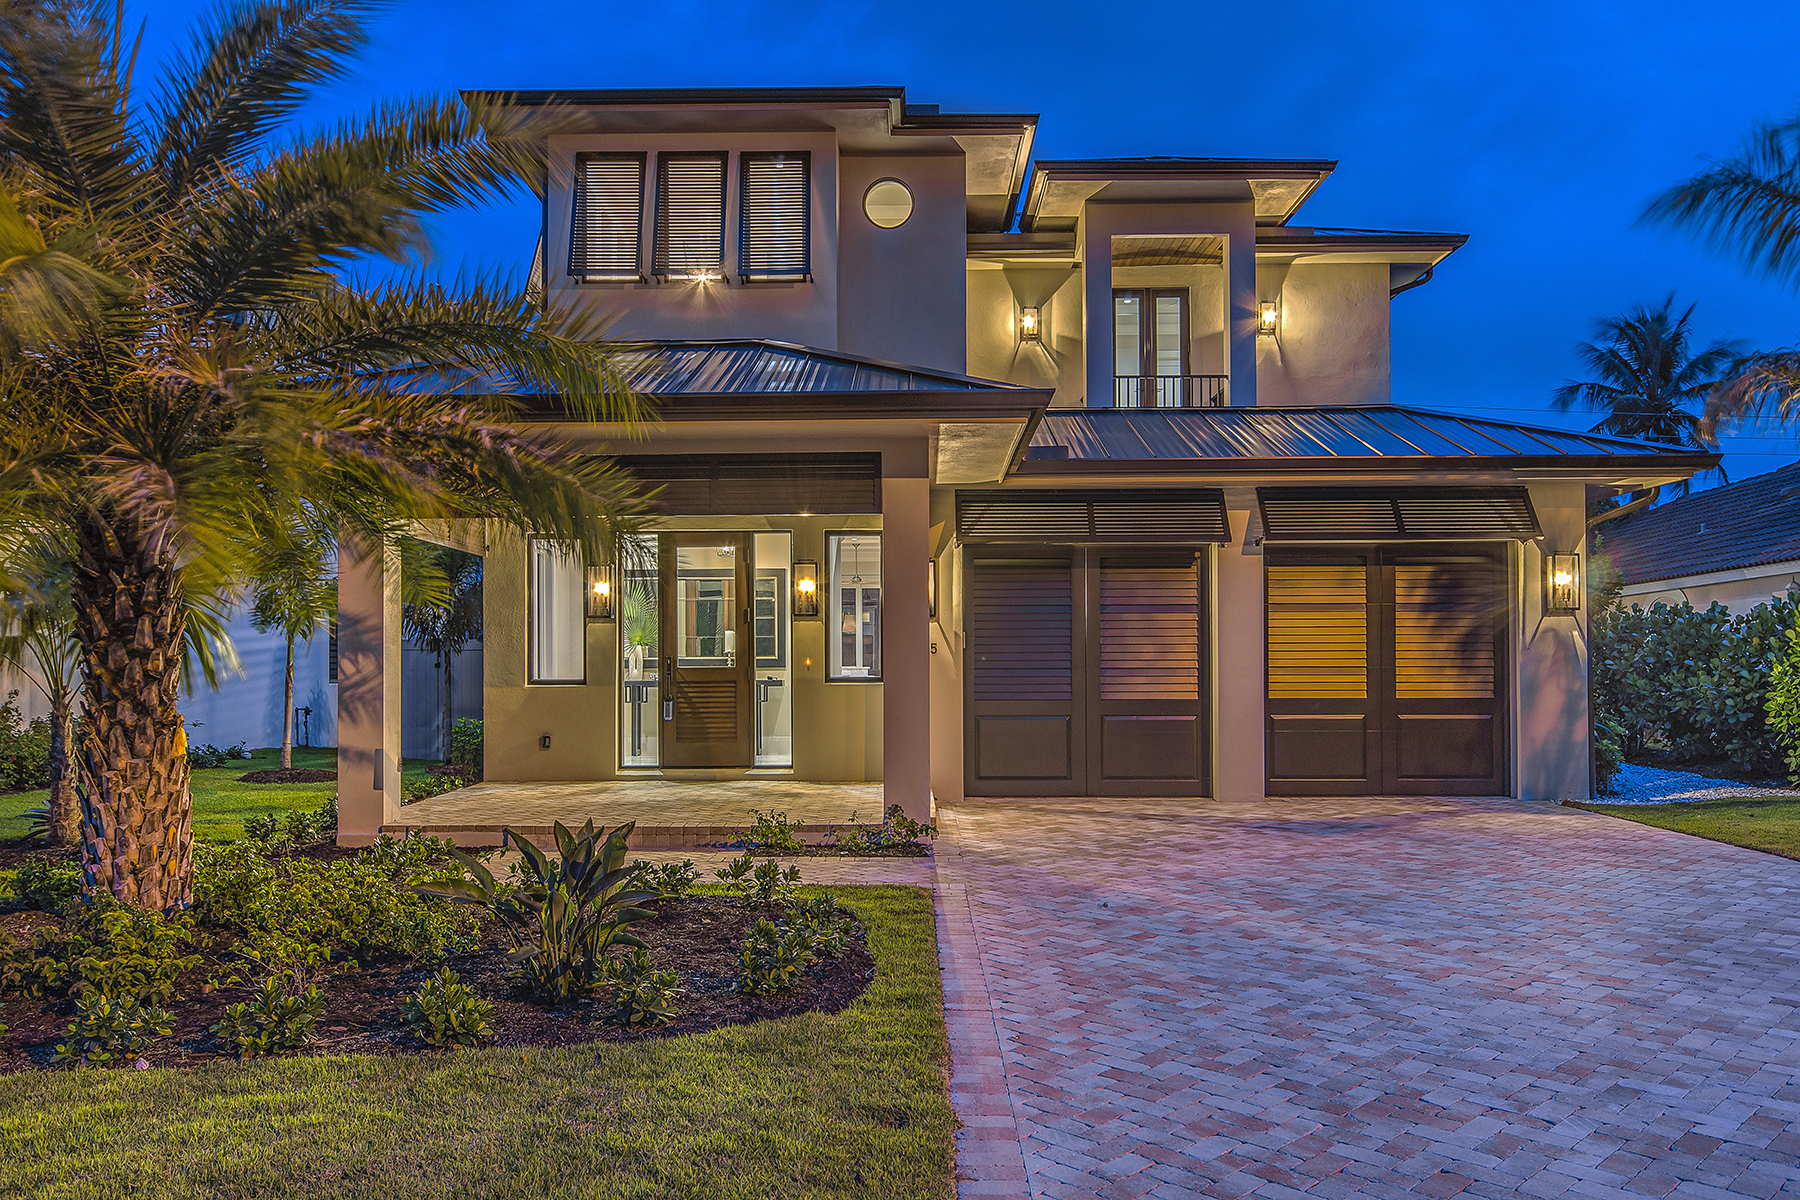 Villa per Vendita alle ore MOORINGS - FAIRWAY TERRACE 565 Fairway Terr Naples, Florida, 34103 Stati Uniti